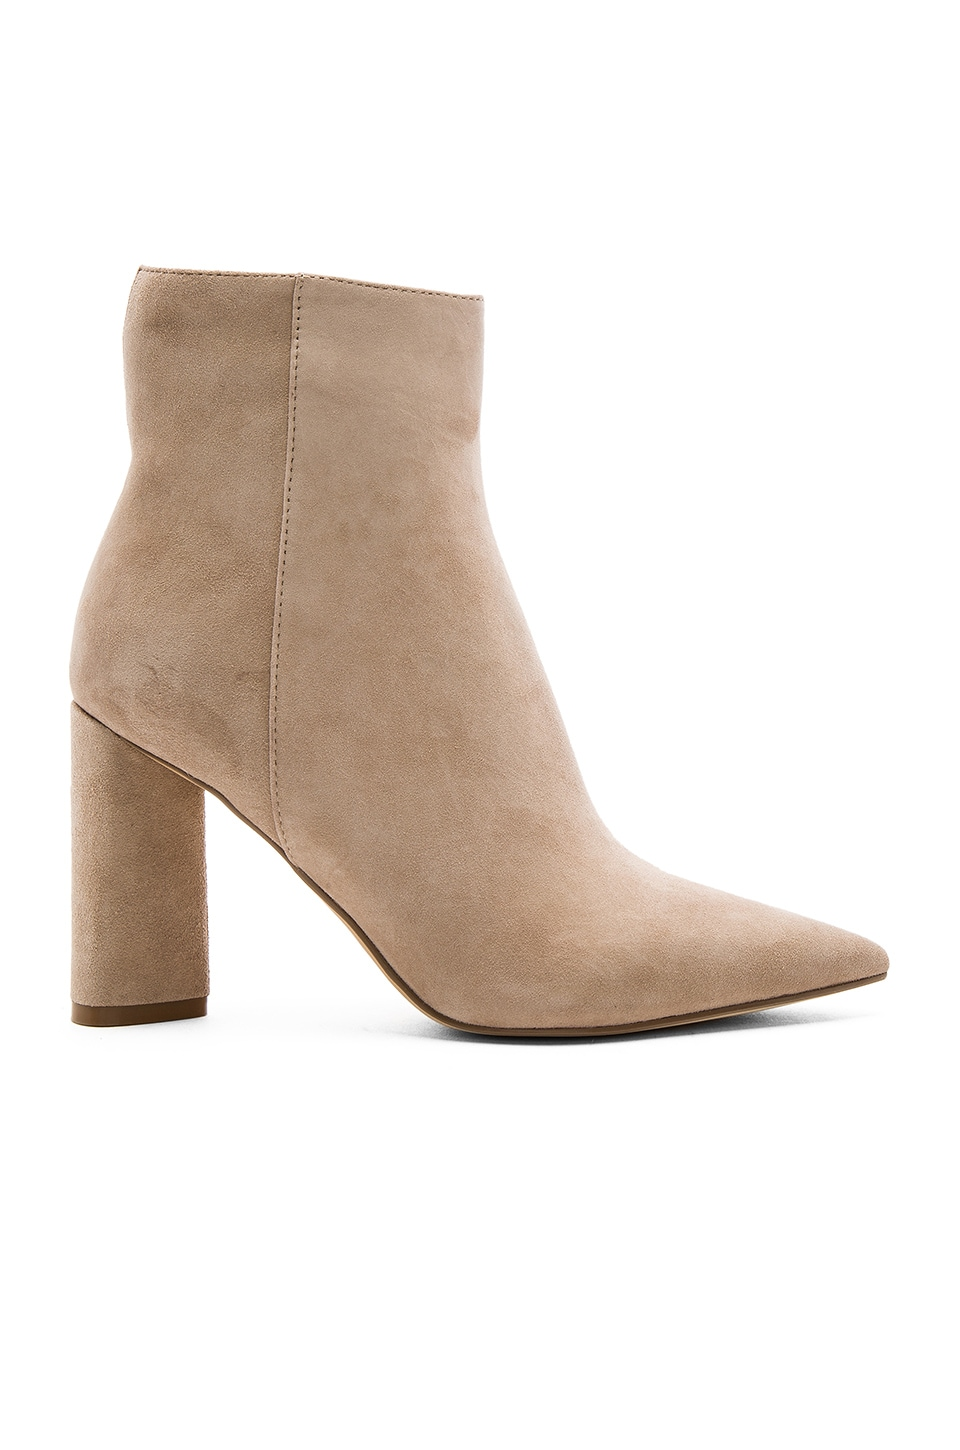 KENDALL + KYLIE Gemma Bootie in Light Natural